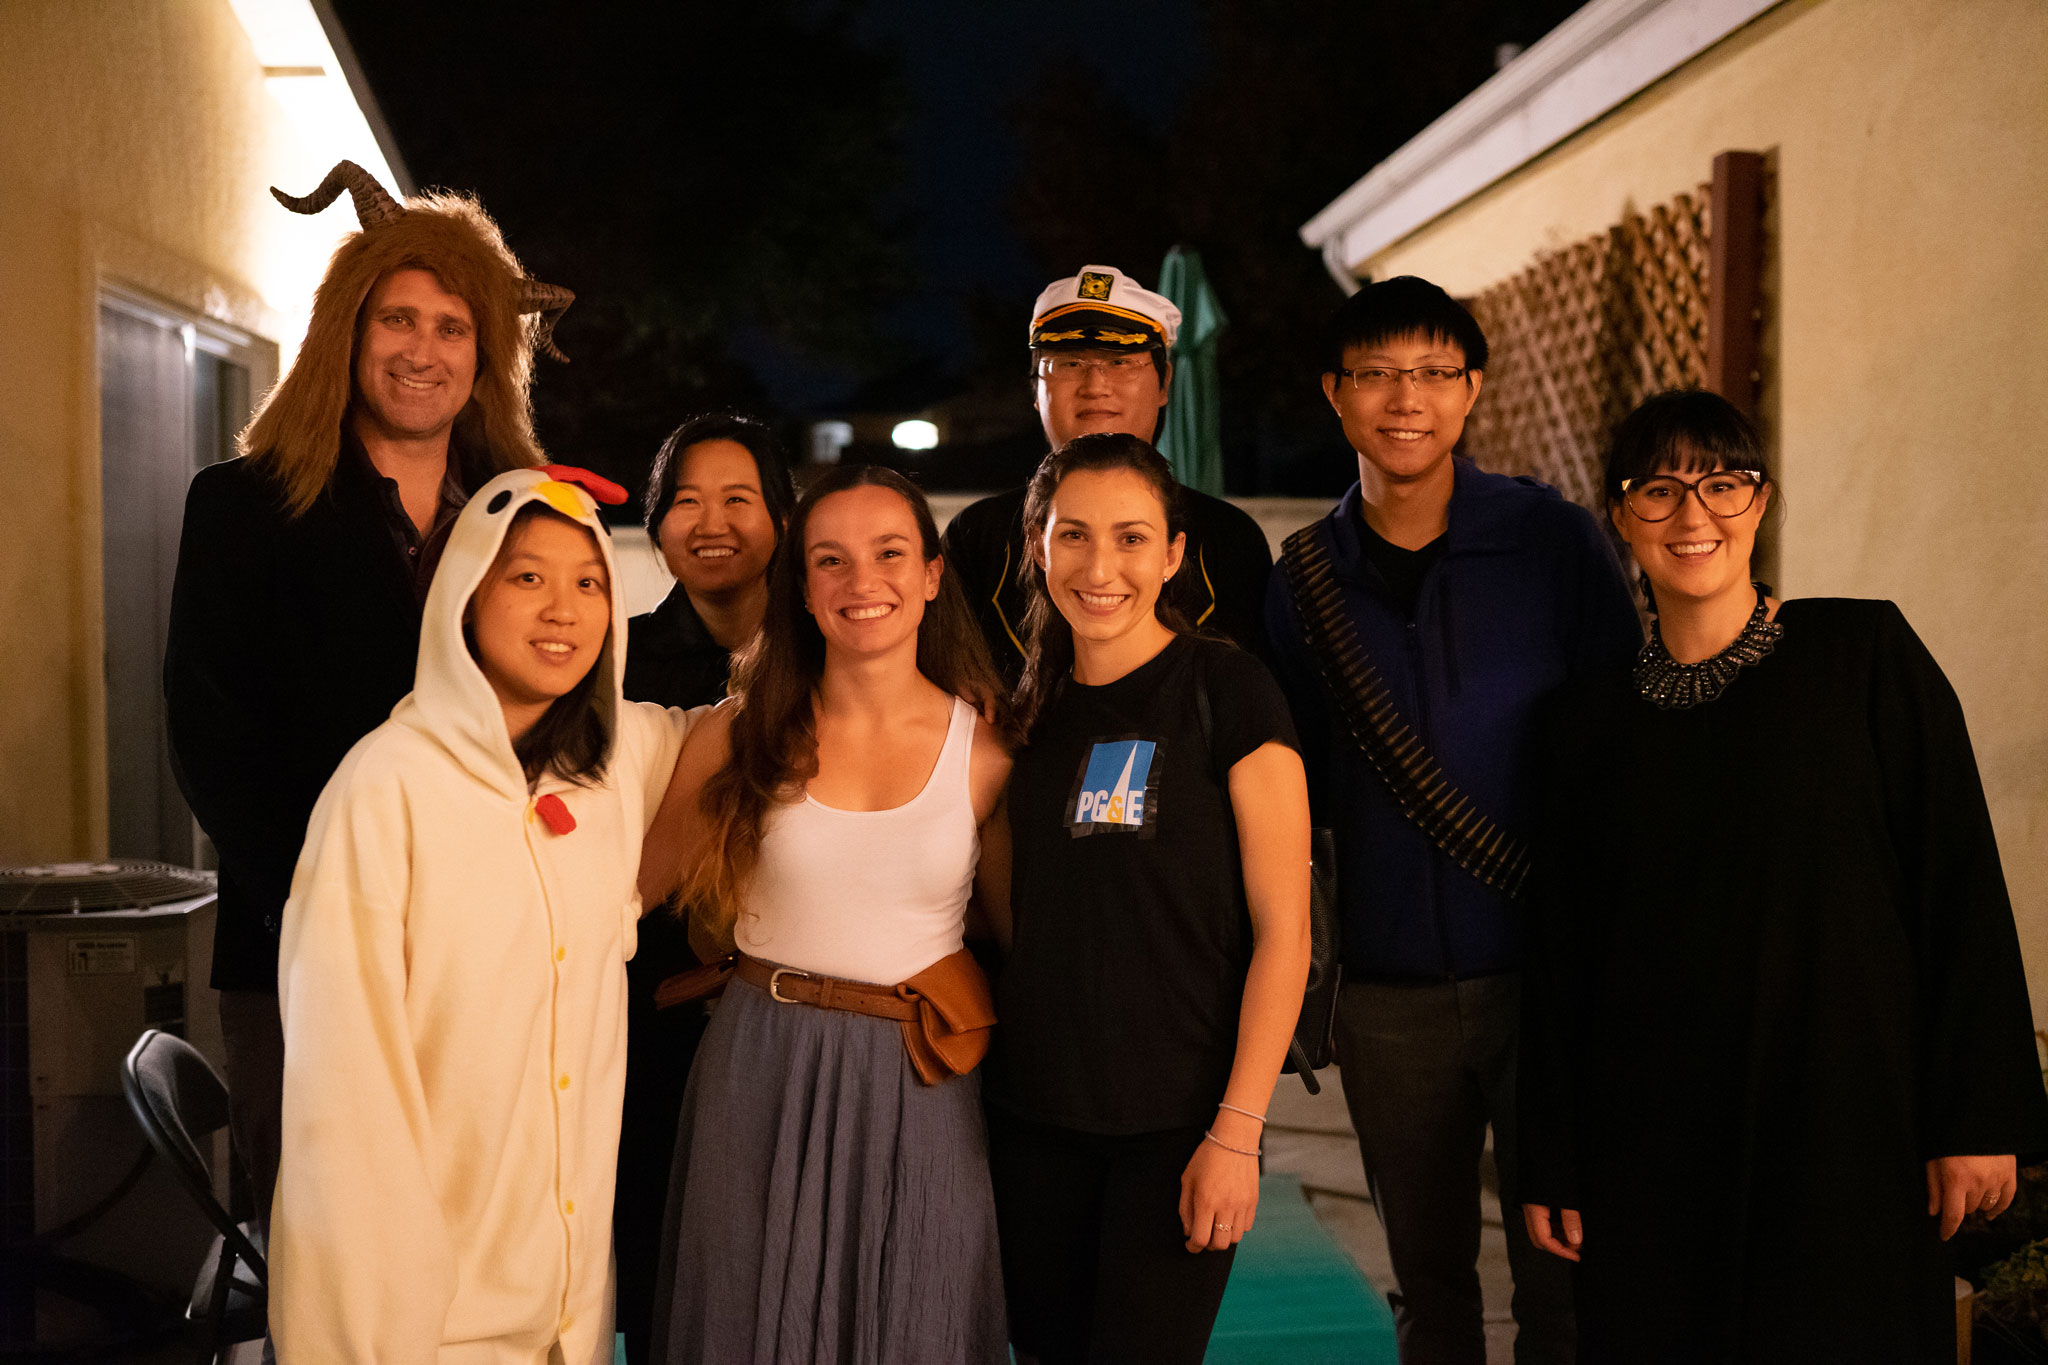 Halloween Party at Mary's house 2019!